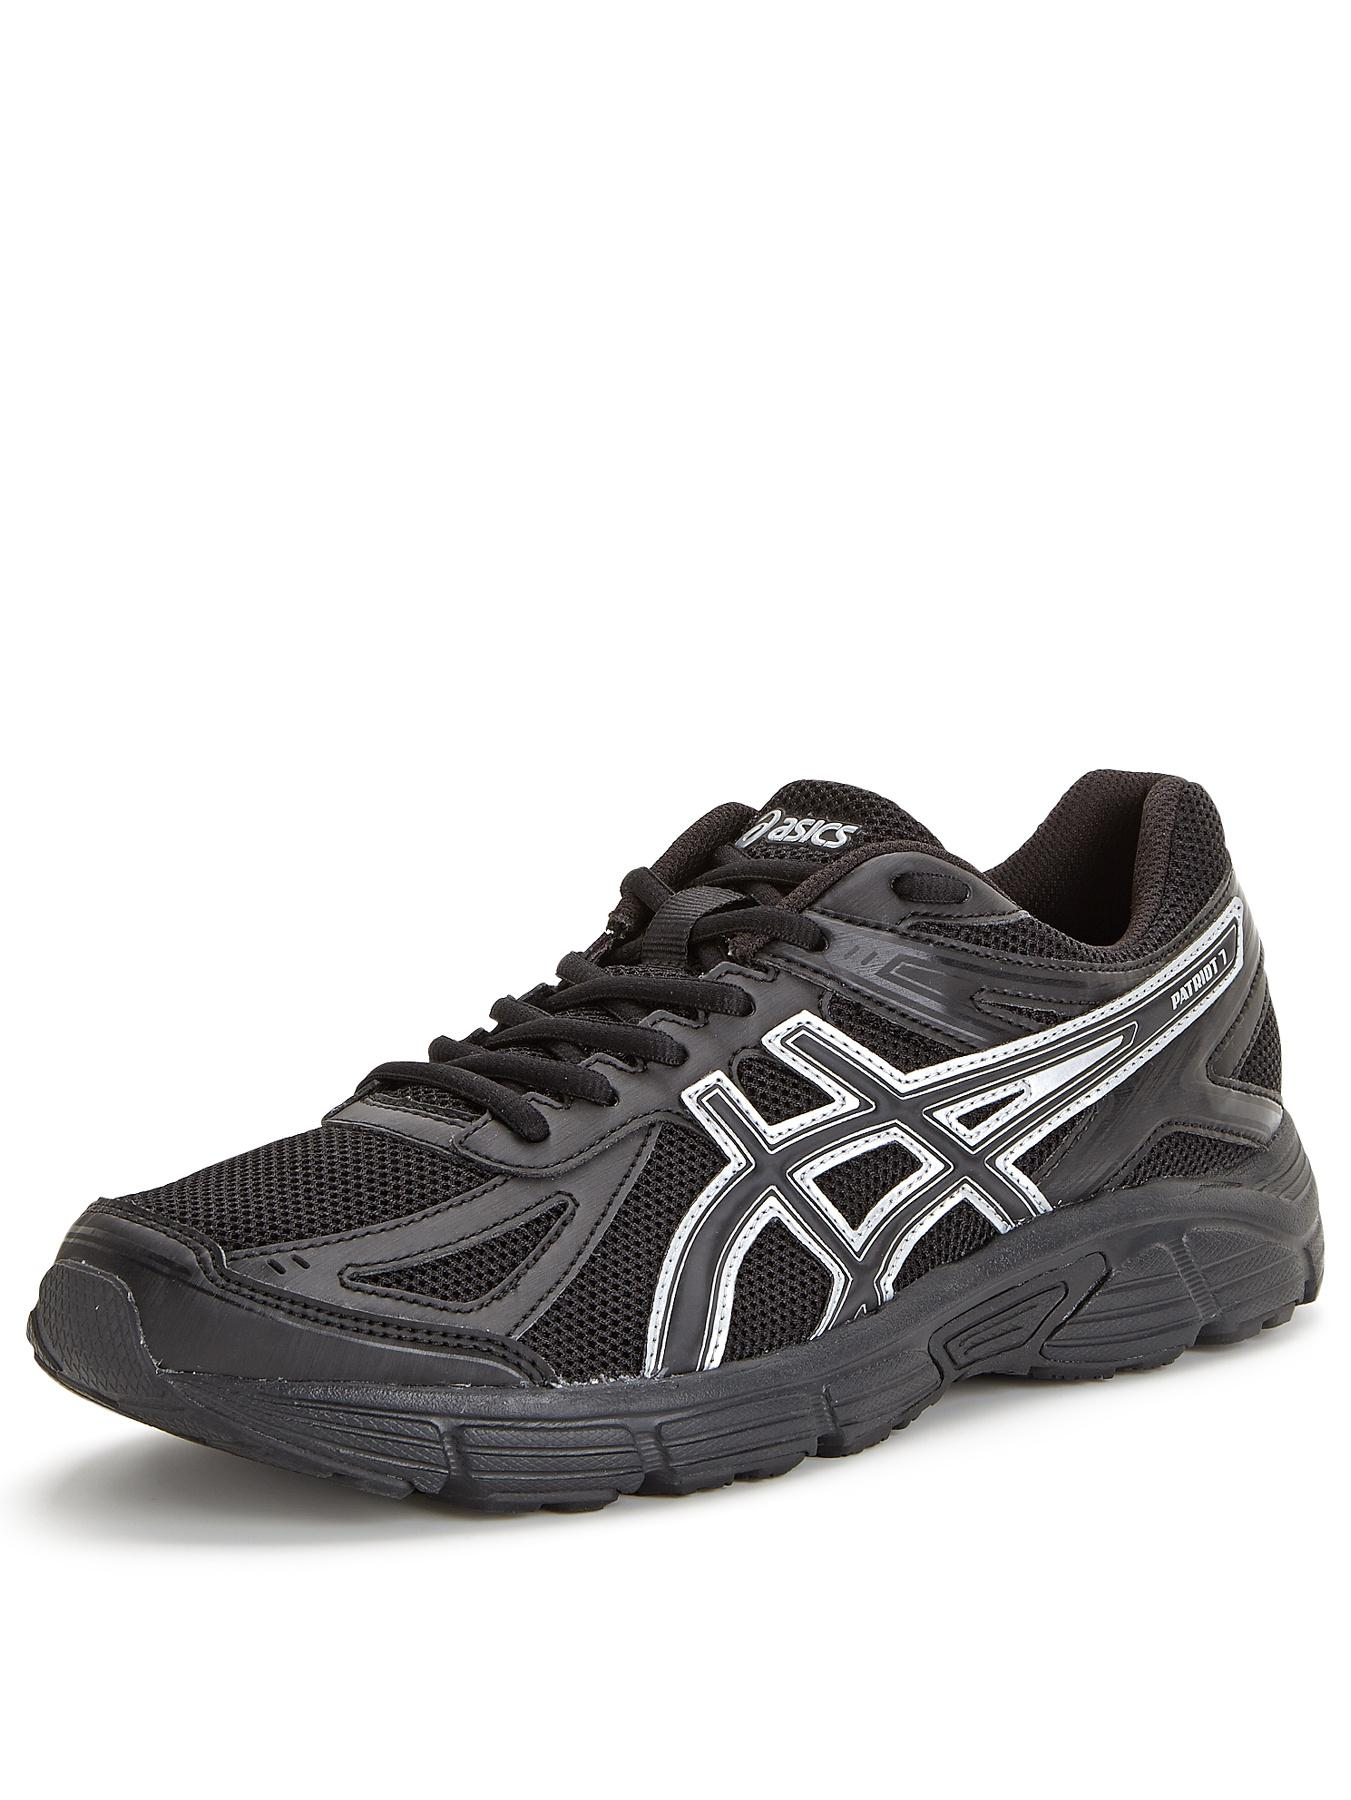 Asics Patriot 7 Mens Trainers - Black, Black